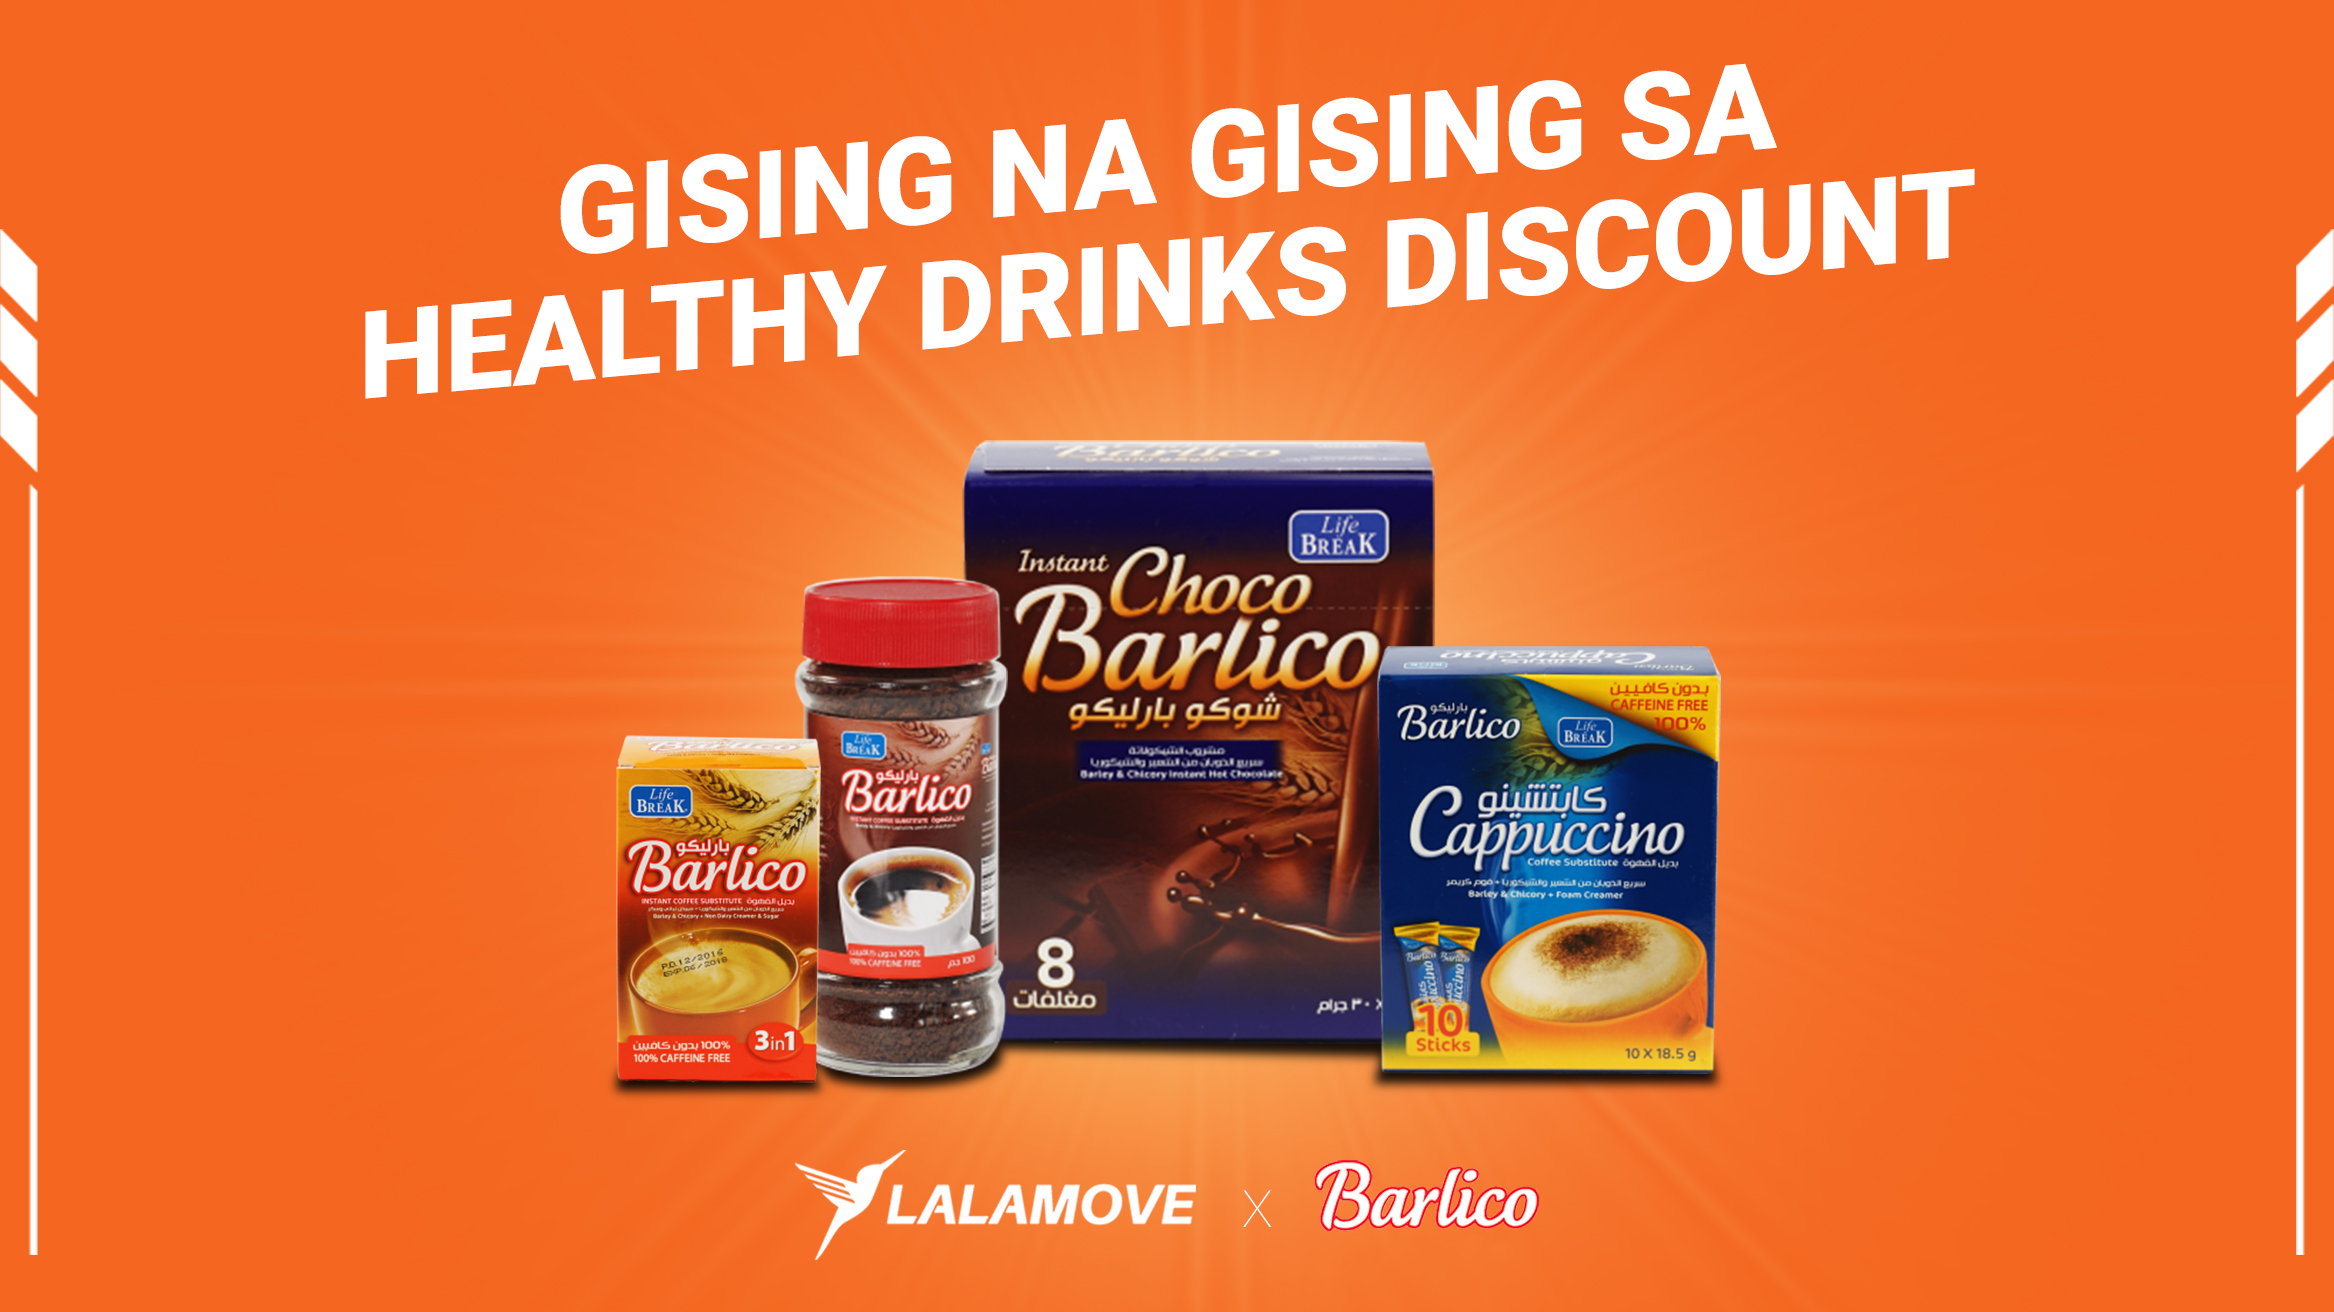 PANALOMOVE: Discount sa healthy drinks para sa Lalamove partner drivers mula sa Barlico